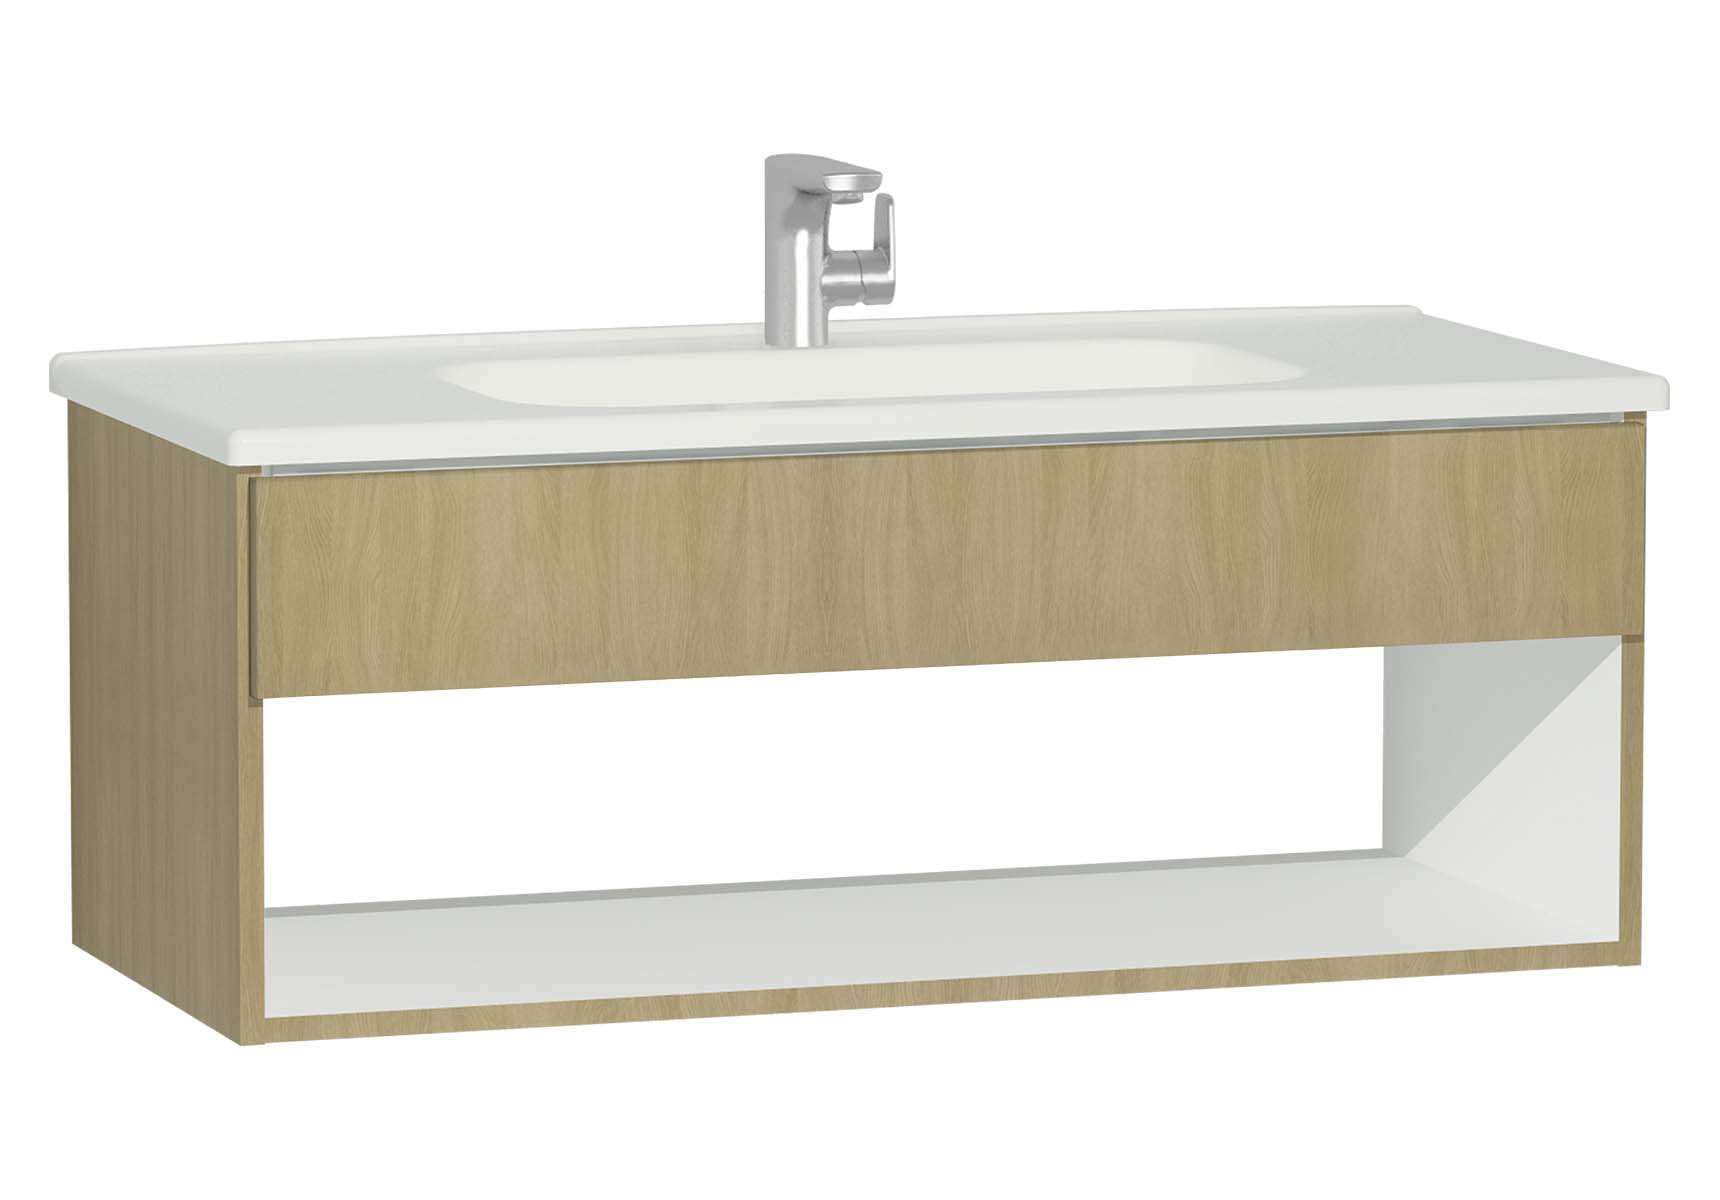 D-Light Hotel Unit, 110 cm, Natural Oak